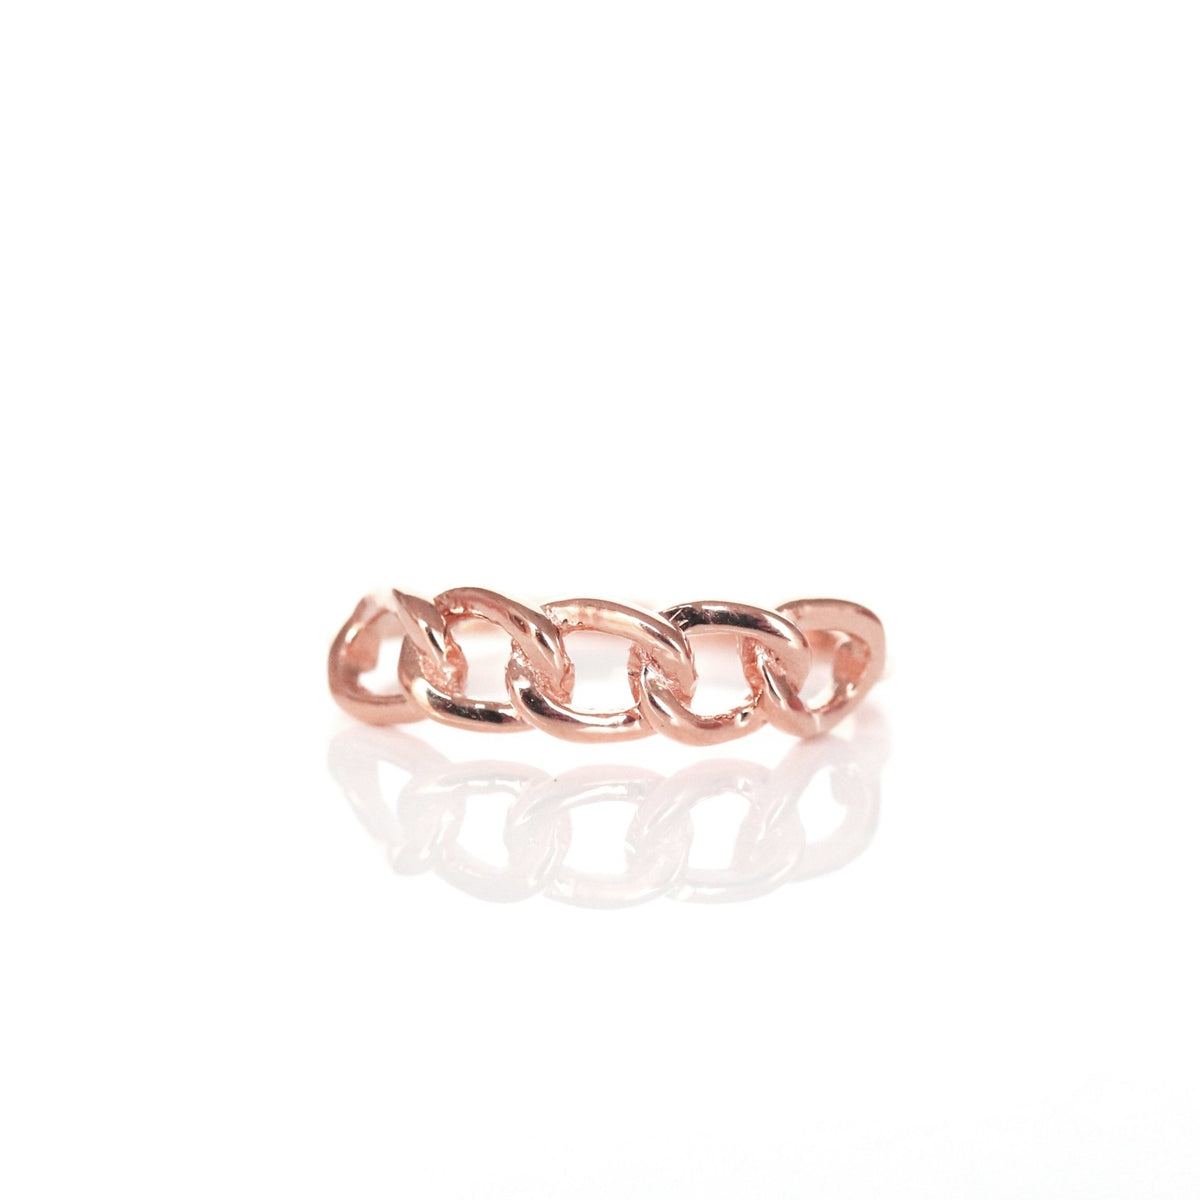 POISE CABLE LINK RING - ROSE GOLD - SO PRETTY CARA COTTER